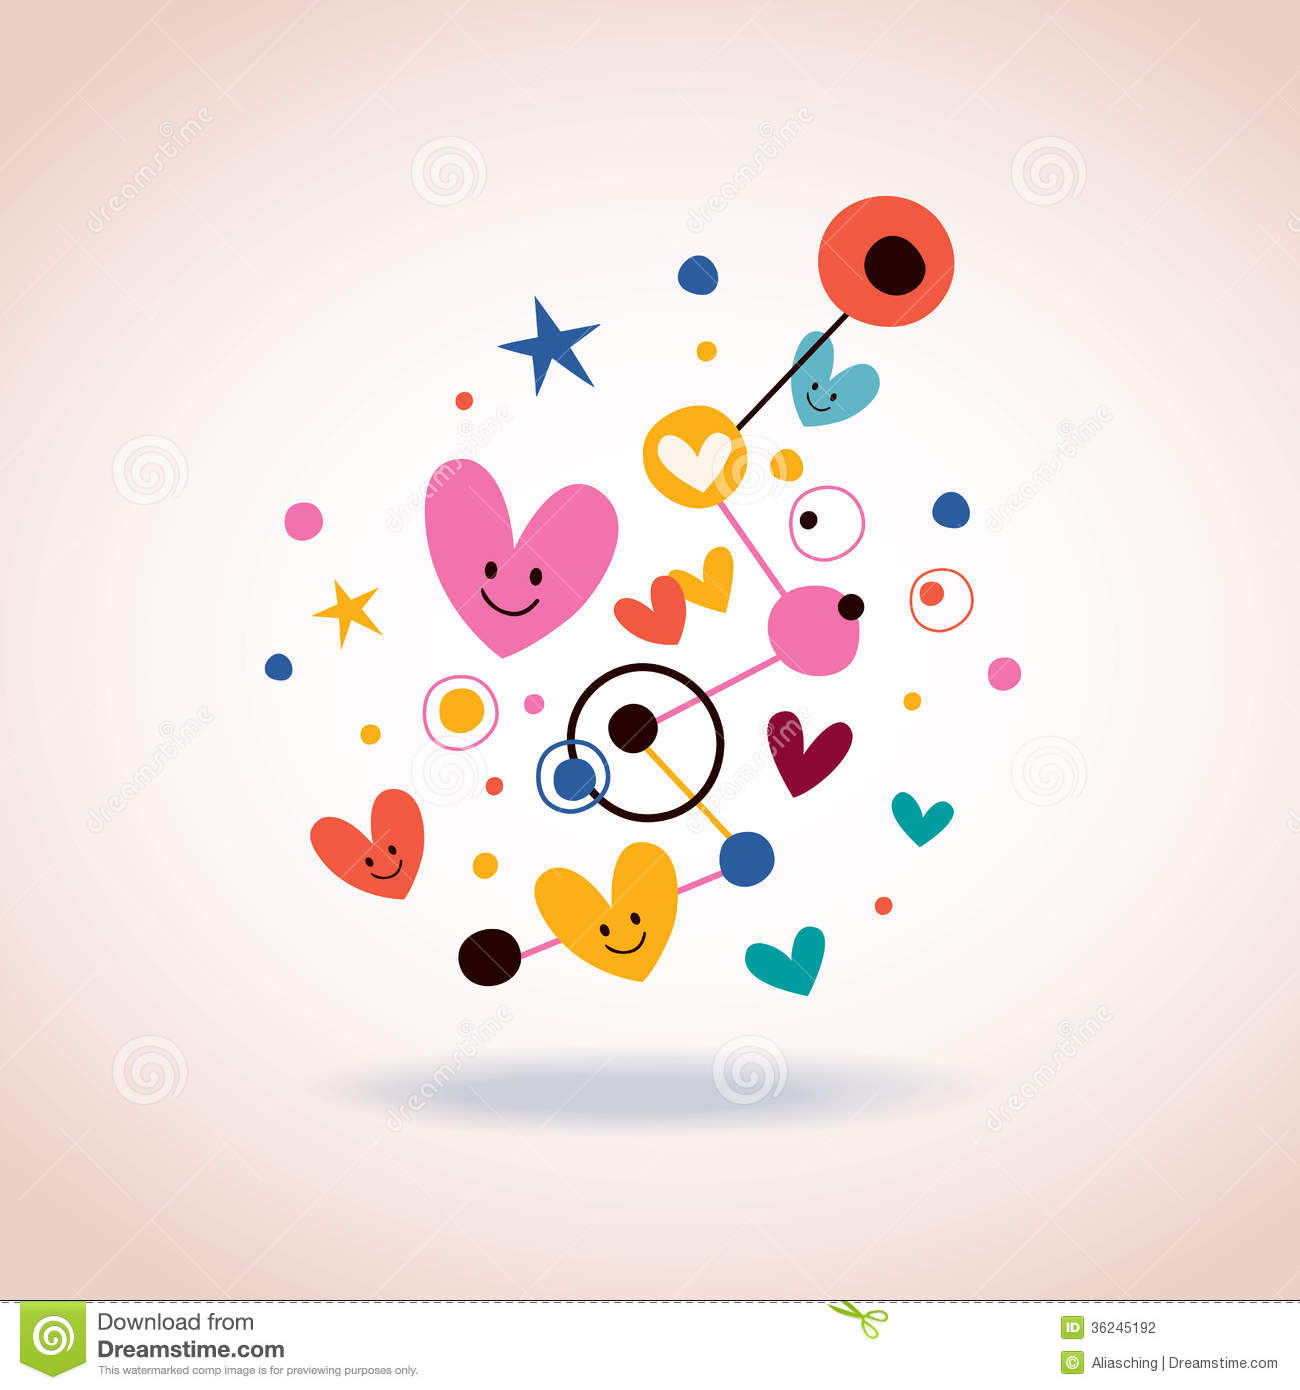 Abstract art illustration with cute hearts and dots stock for Cute abstract art